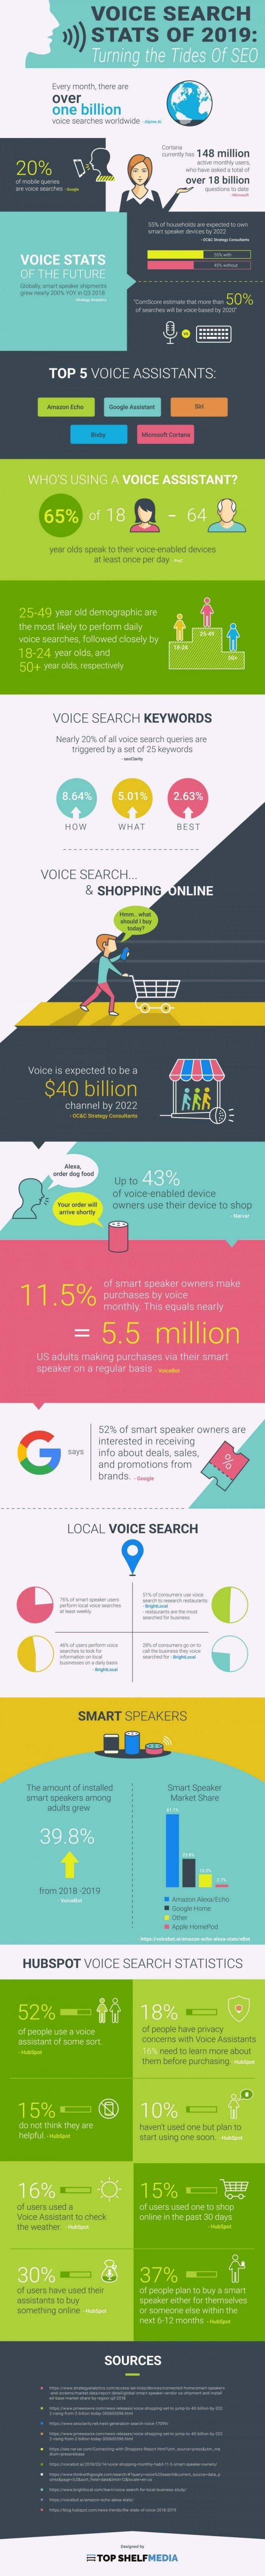 Voice Search Stats For 2019 #infographic